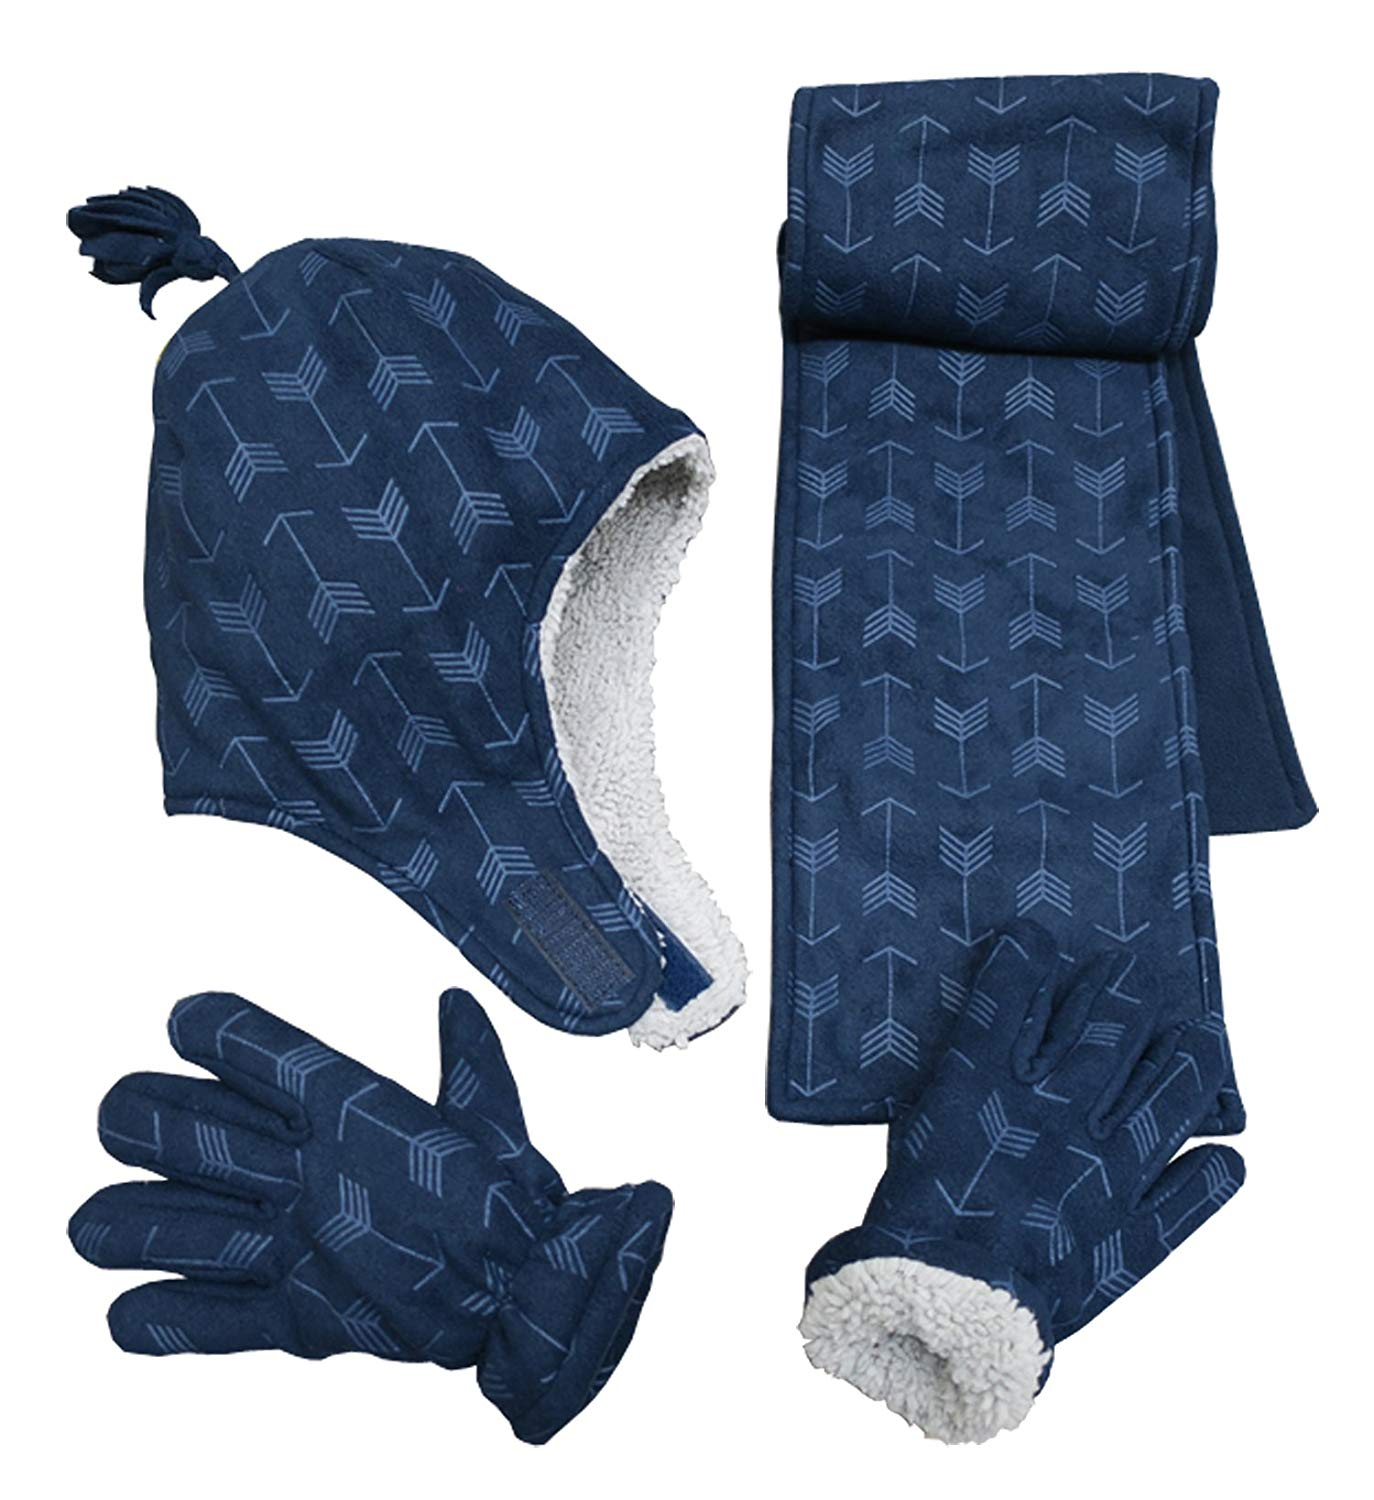 Grand Sierra Kids Thinsulate Gloves Navy Boys 13-18